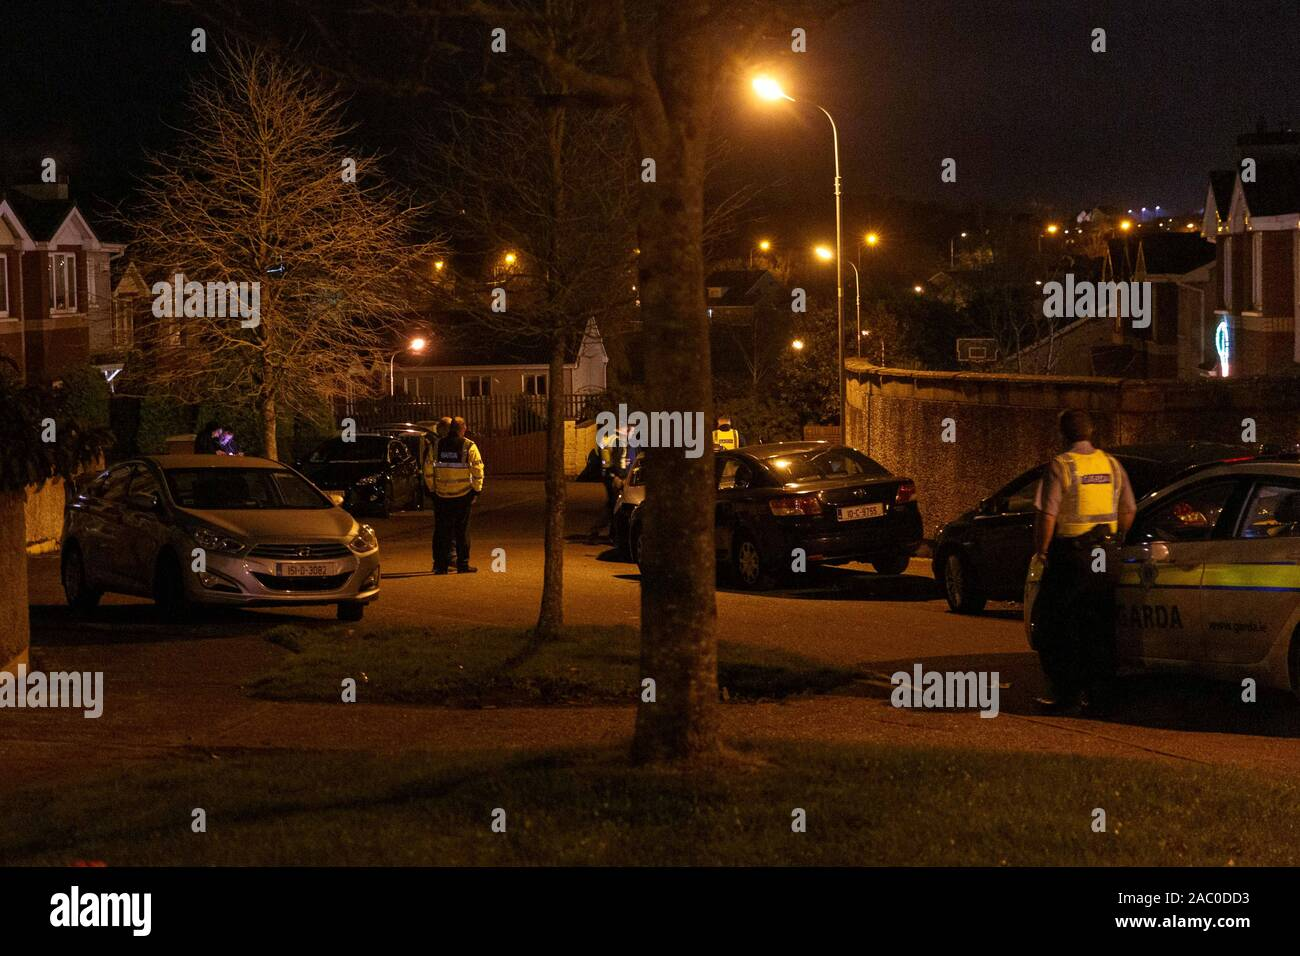 Cork, Ireland. 29th Nov 2019. Shooting in Chapelgate, Ballyvolane, Cork City. At around 7:45 today multiple units of An Gardai Siochana including unmarked garda cars, armed response, and marked cars attended a shooting in Chapelgate Ballyvolane, Witnesses said there was up to 6 shots fired in the estate just before the gardai rushed to the scene. Credit: Damian Coleman/Alamy Live News Stock Photo